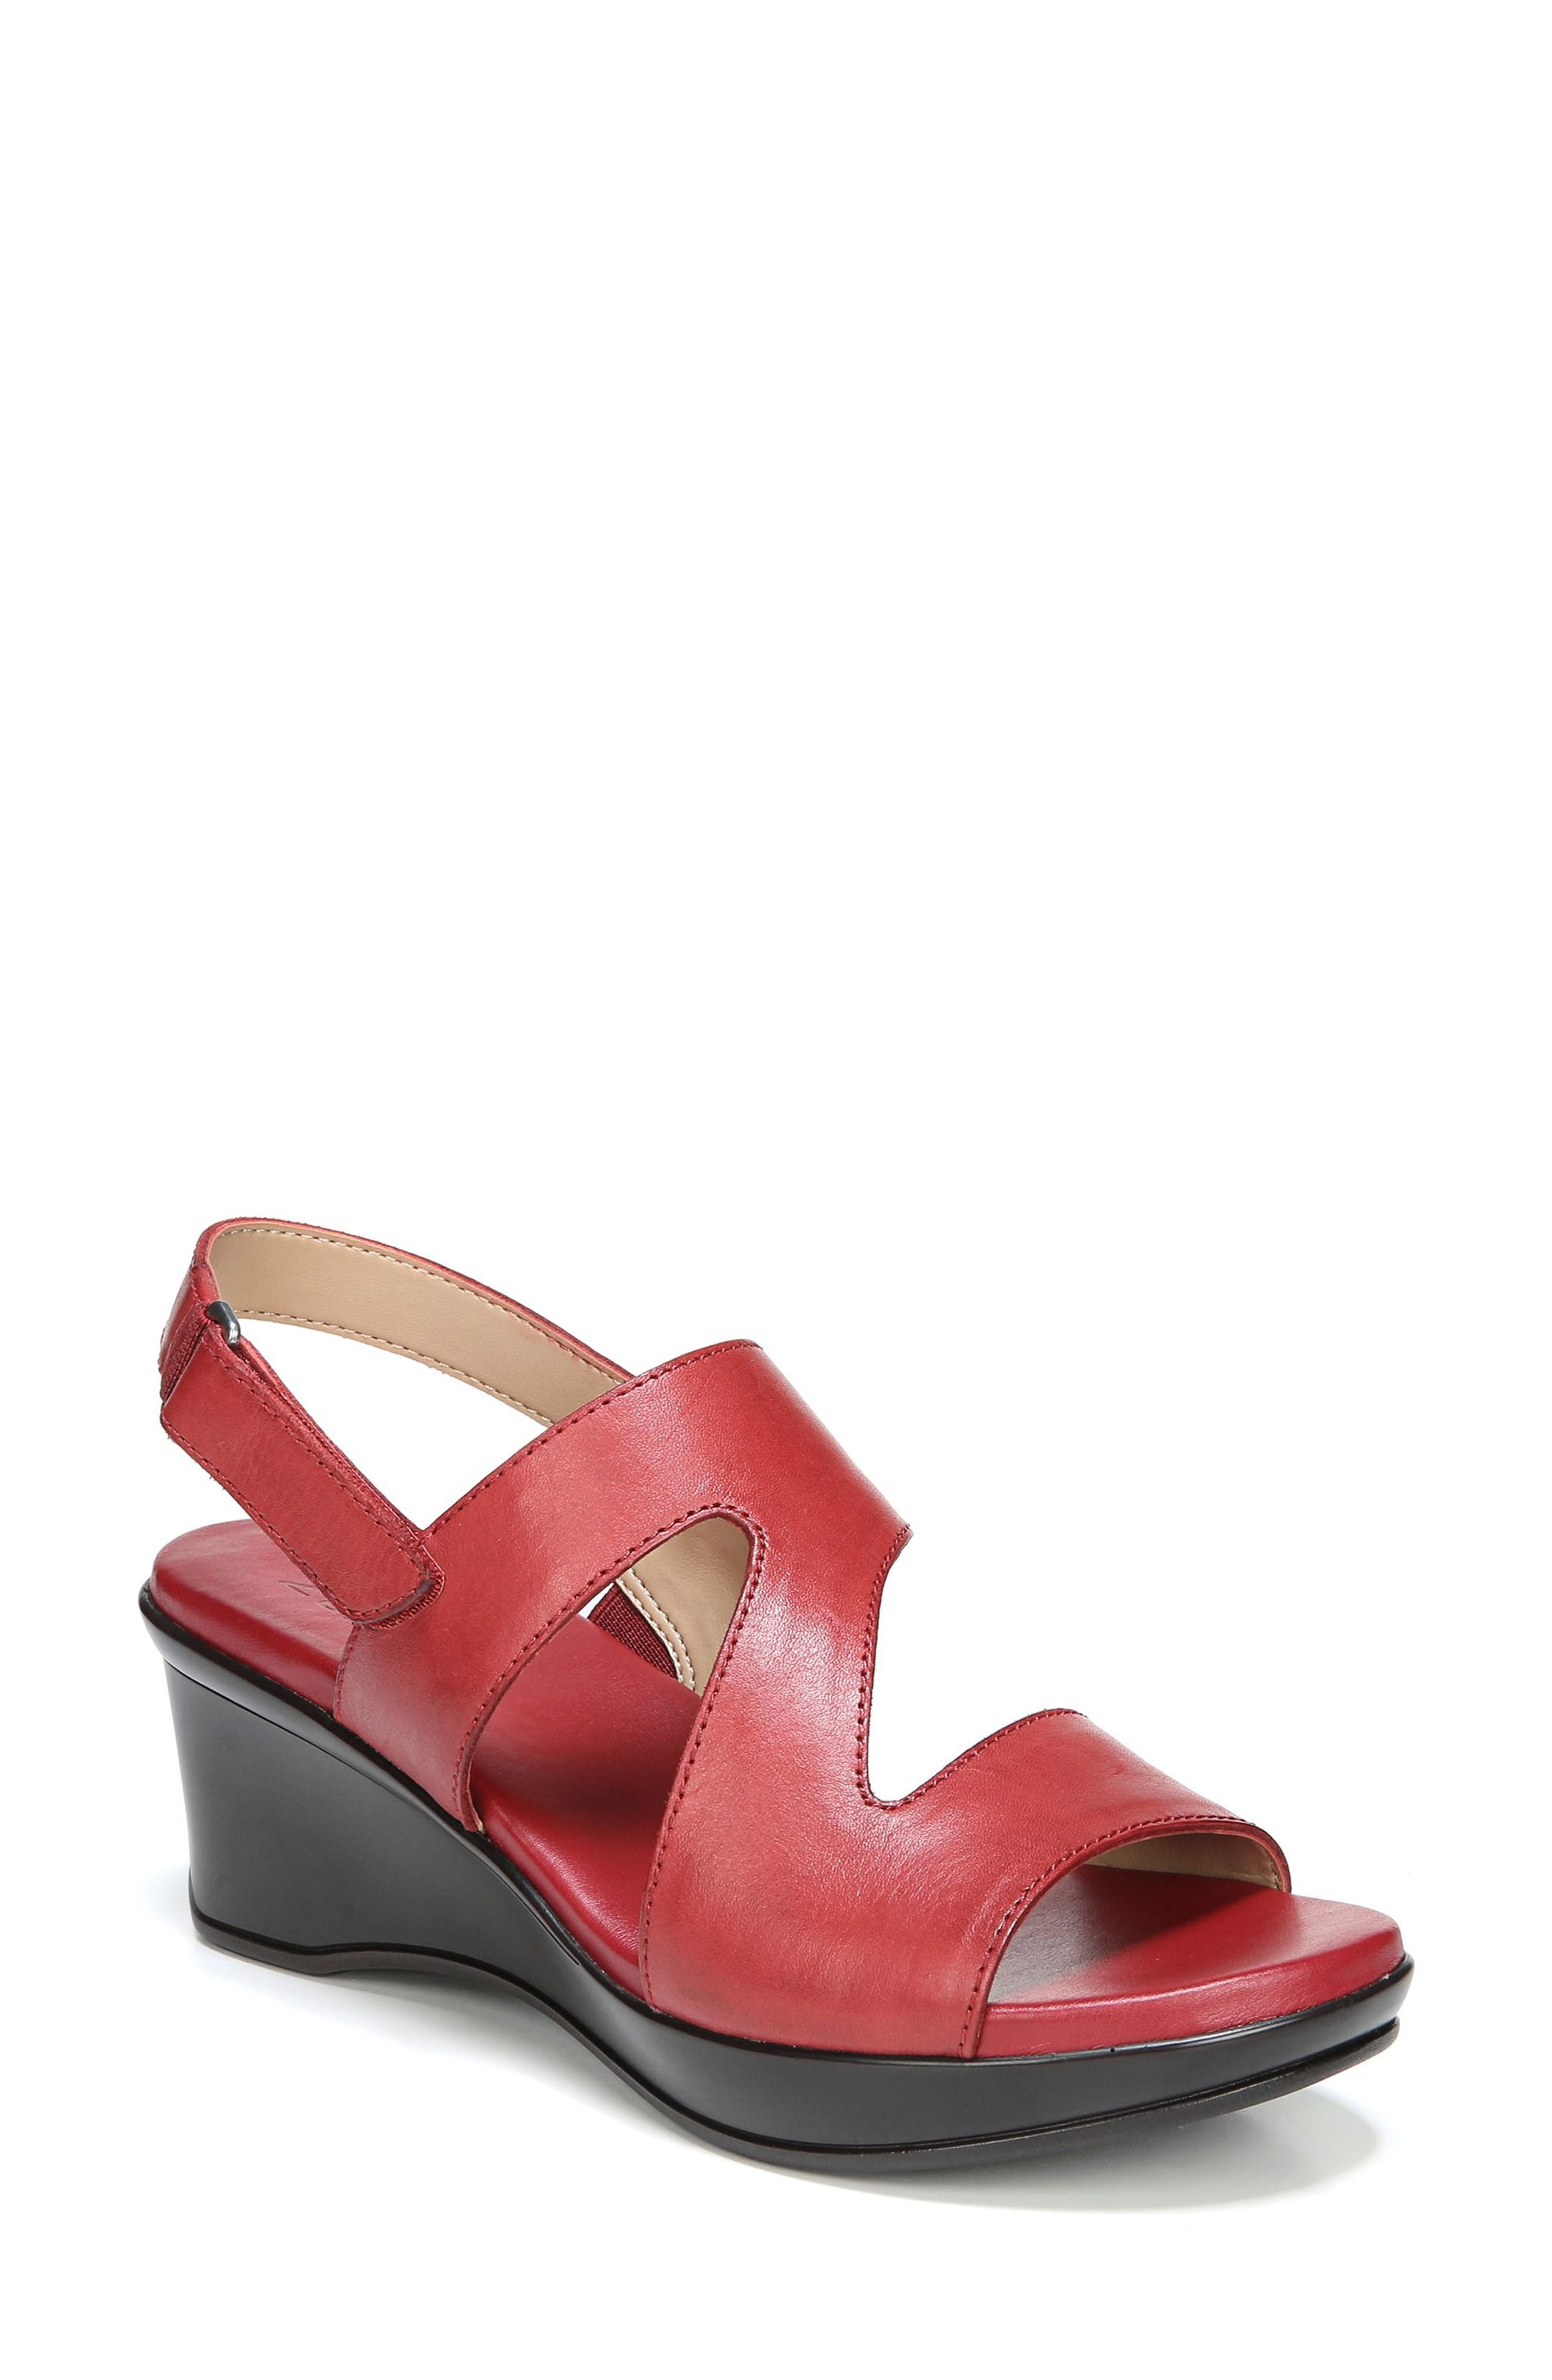 Naturalizer Valerie Wedge Sandal (Women)